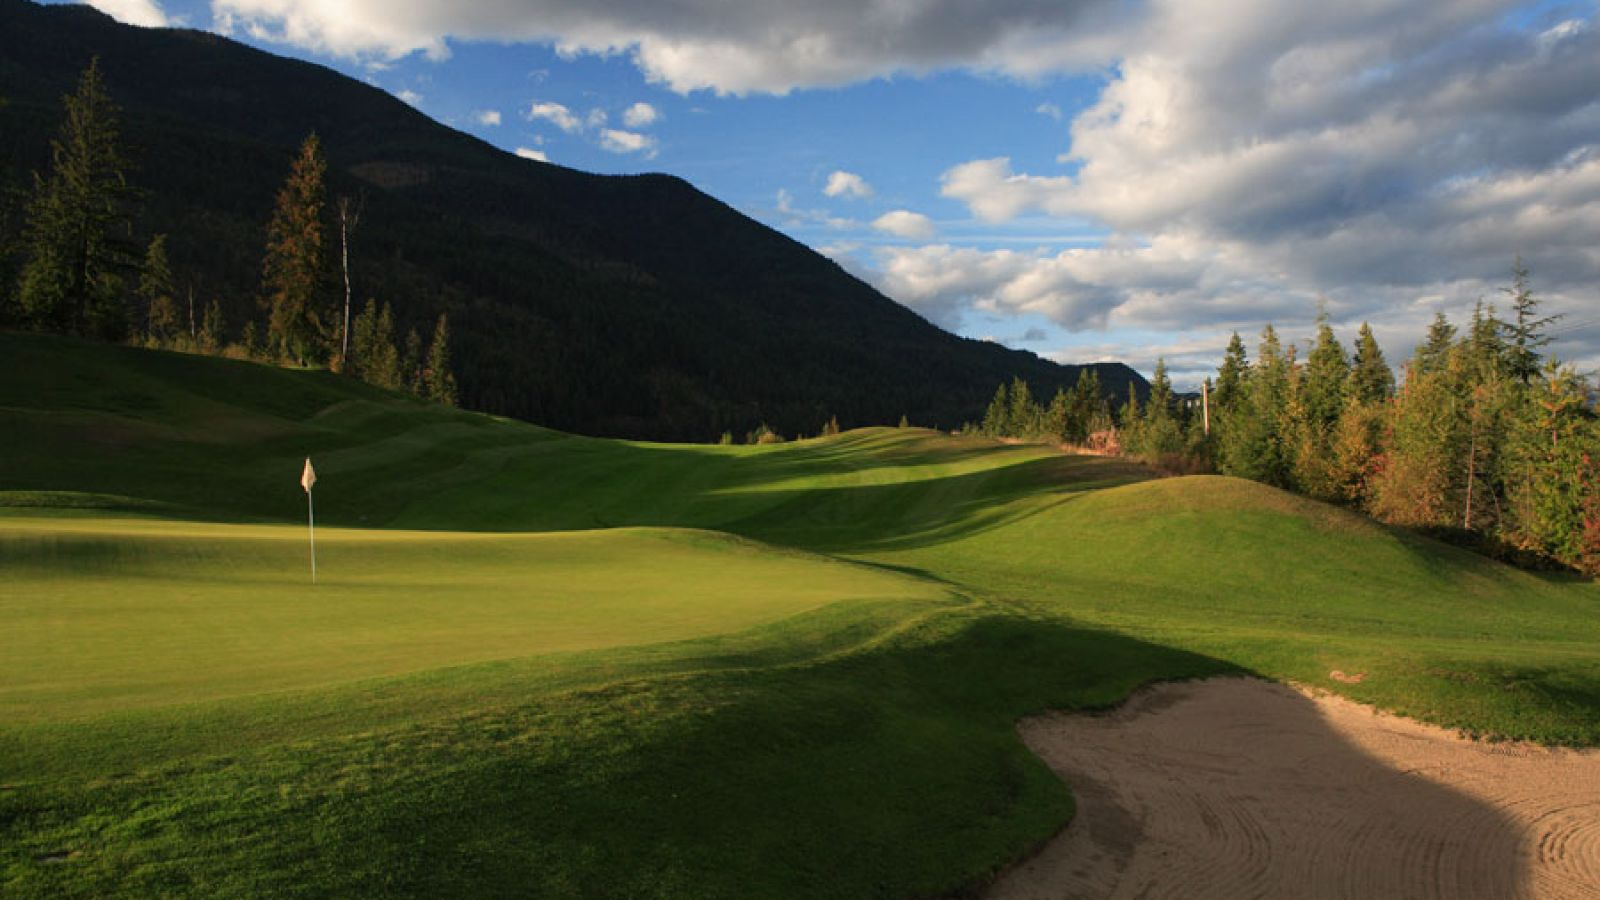 Nearby Balfour, Nelson and Kokanee Springs Golf Courses.